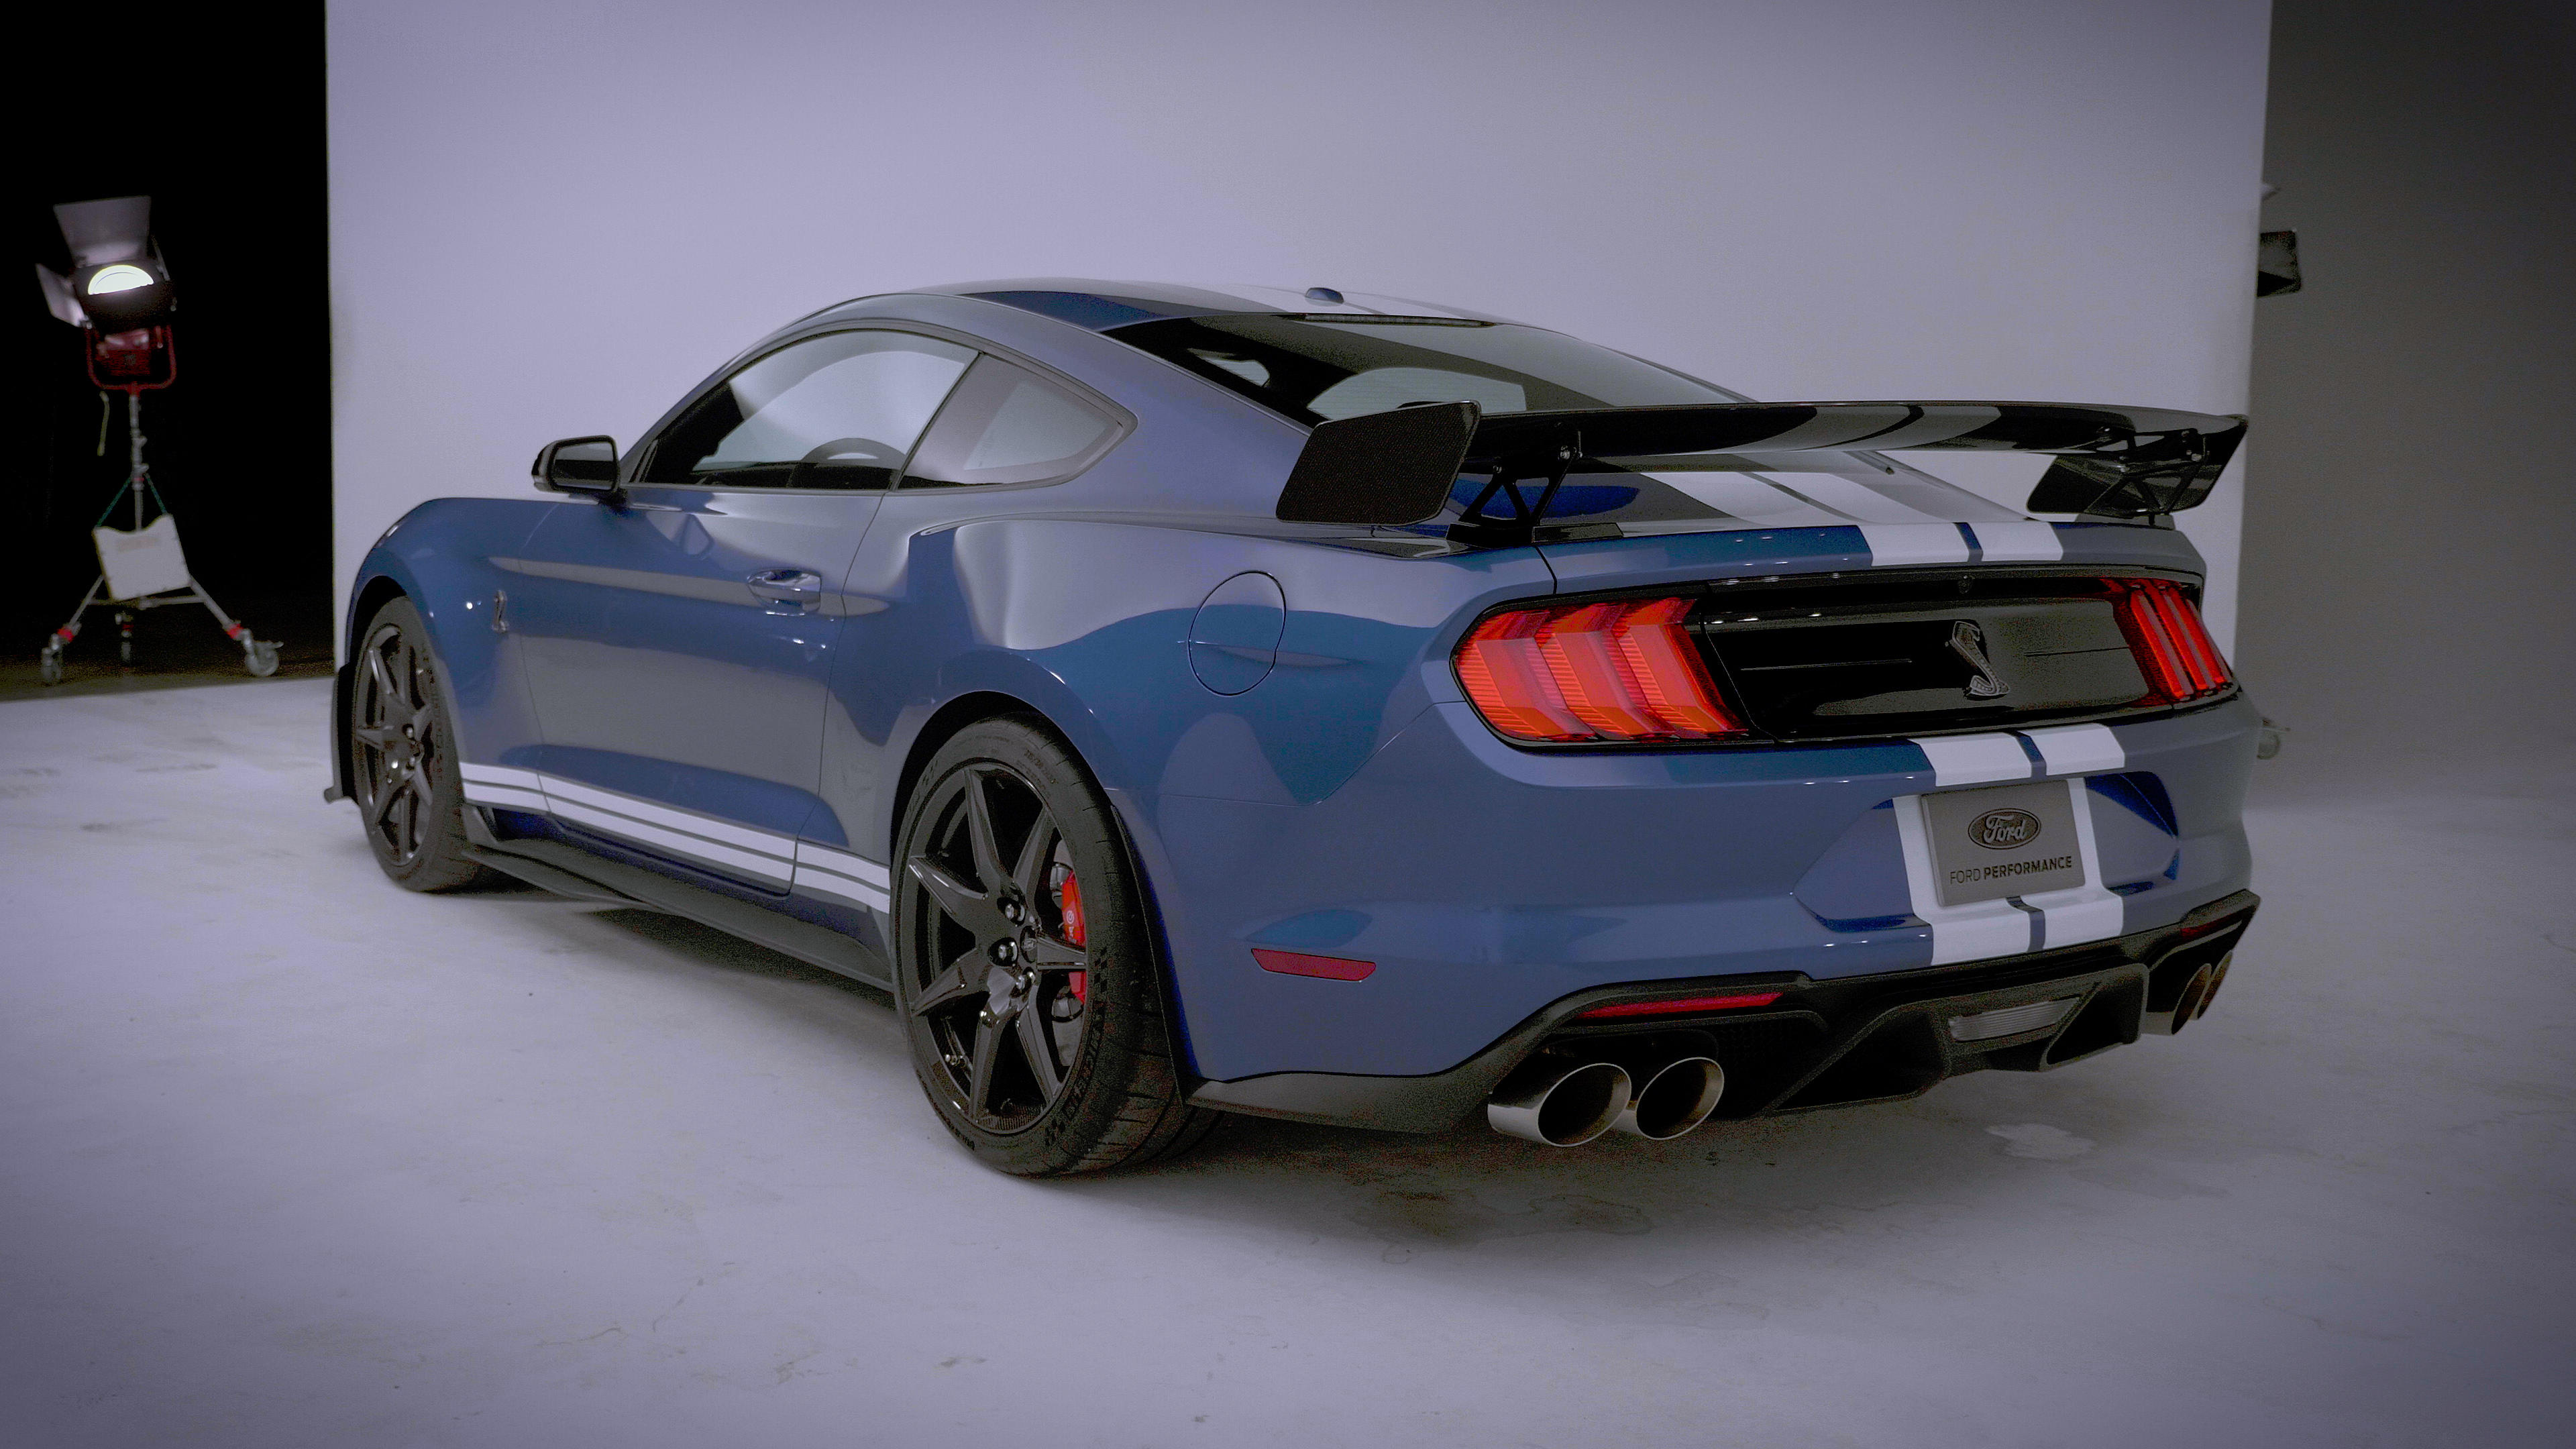 2020 Ford Mustang Shelby GT500 rear end